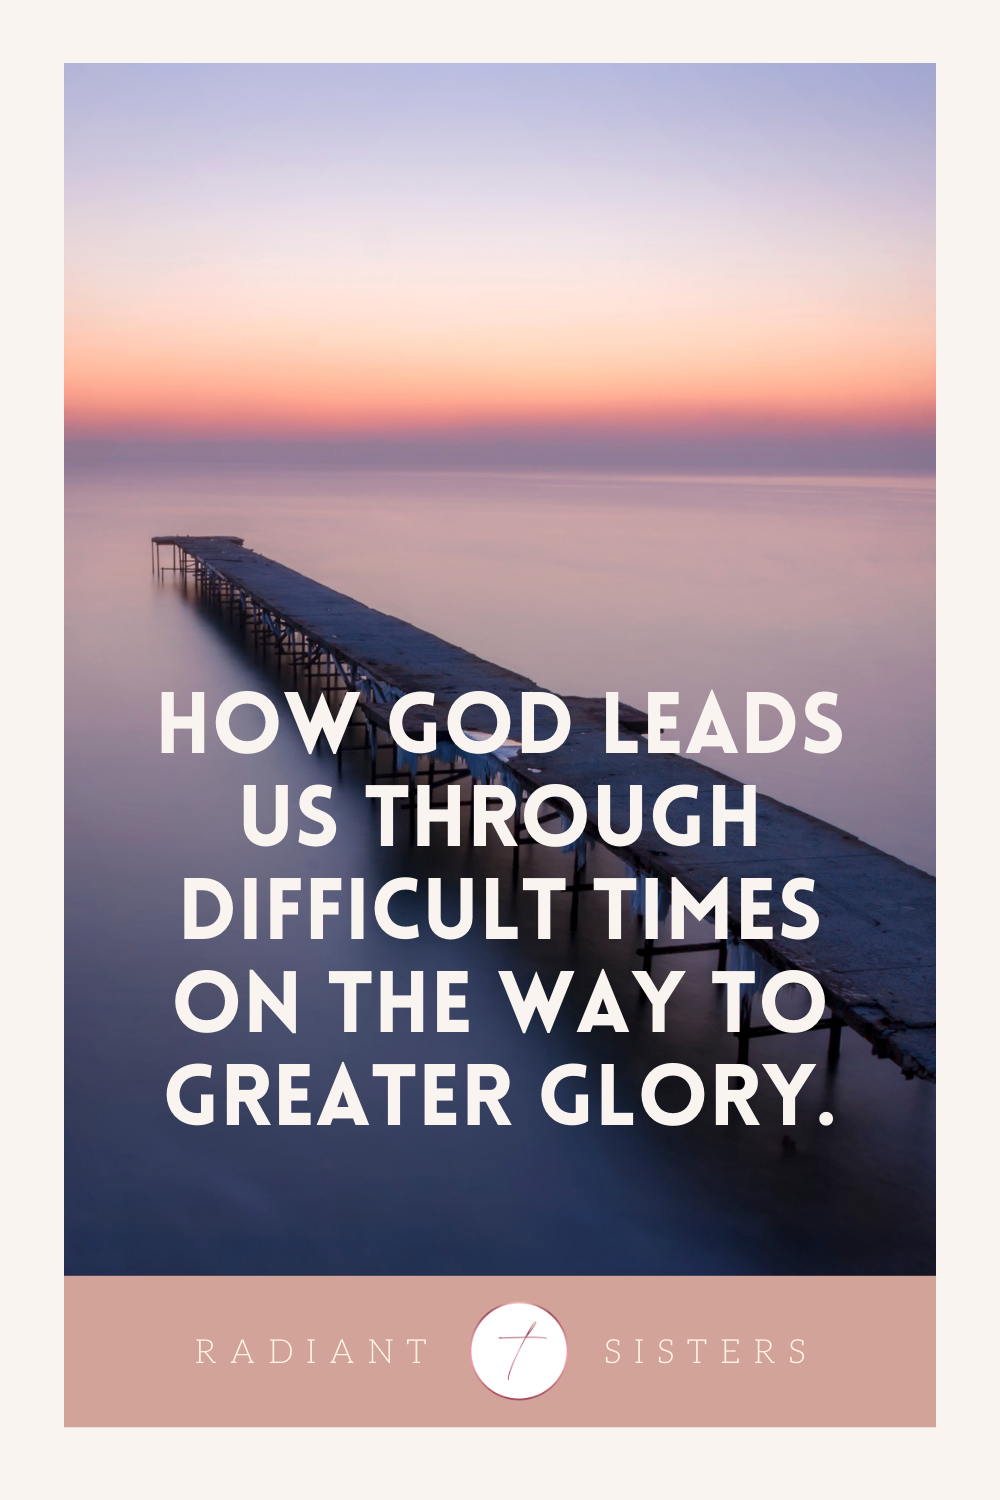 How God Leads Us Through Difficult Times on the Way to Greater Glory